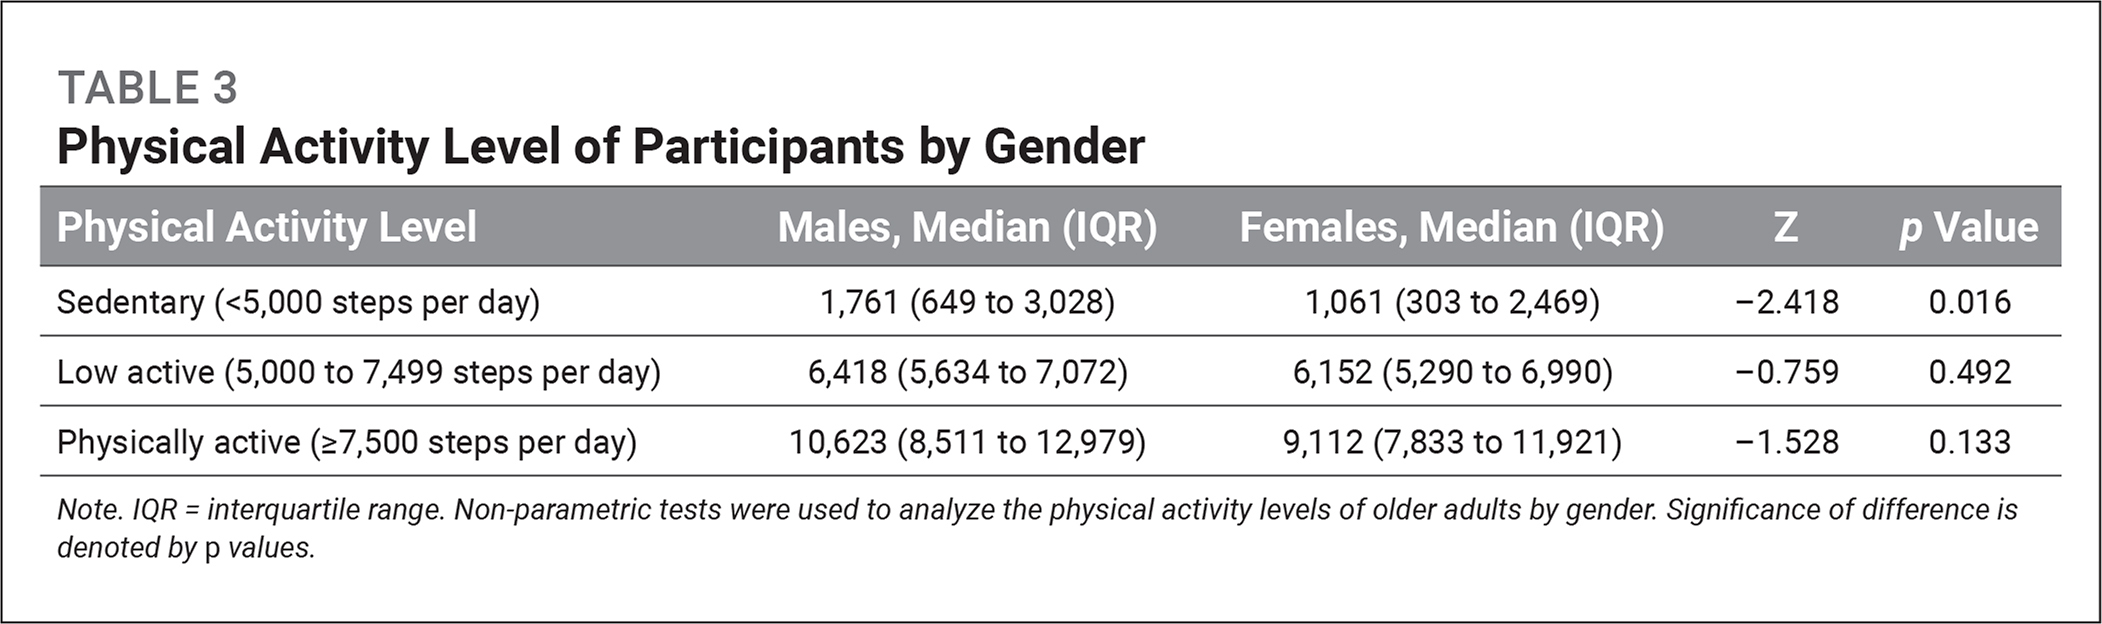 Physical Activity Level of Participants by Gender